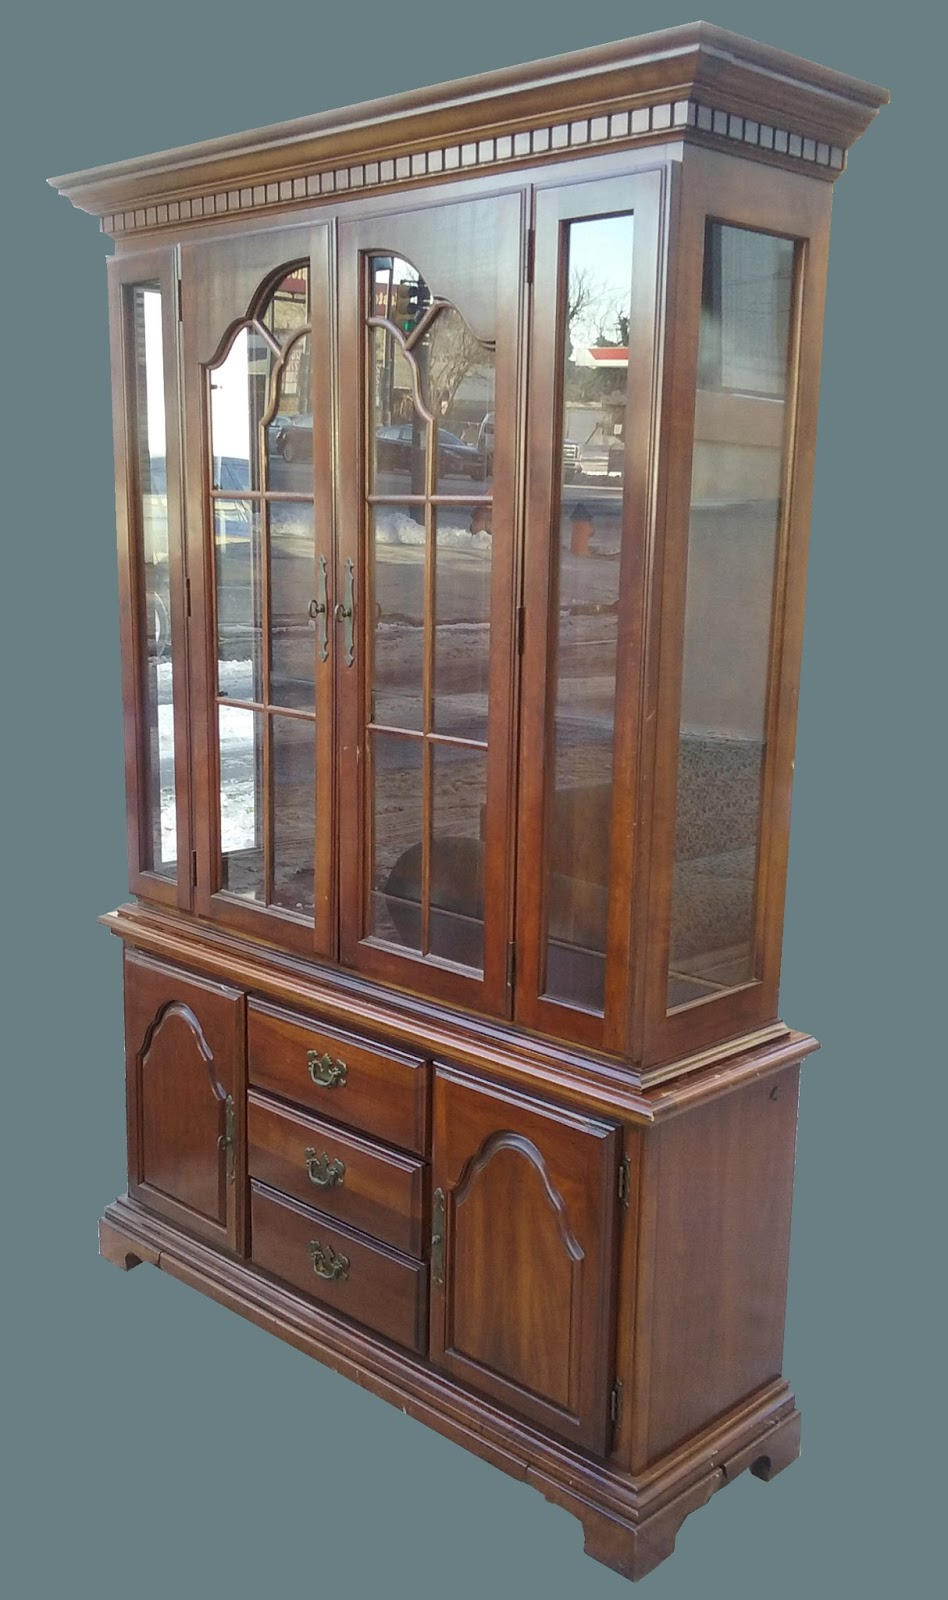 2 Piece China Cabinet W/ Dental Crown Molding   $175 SOLD